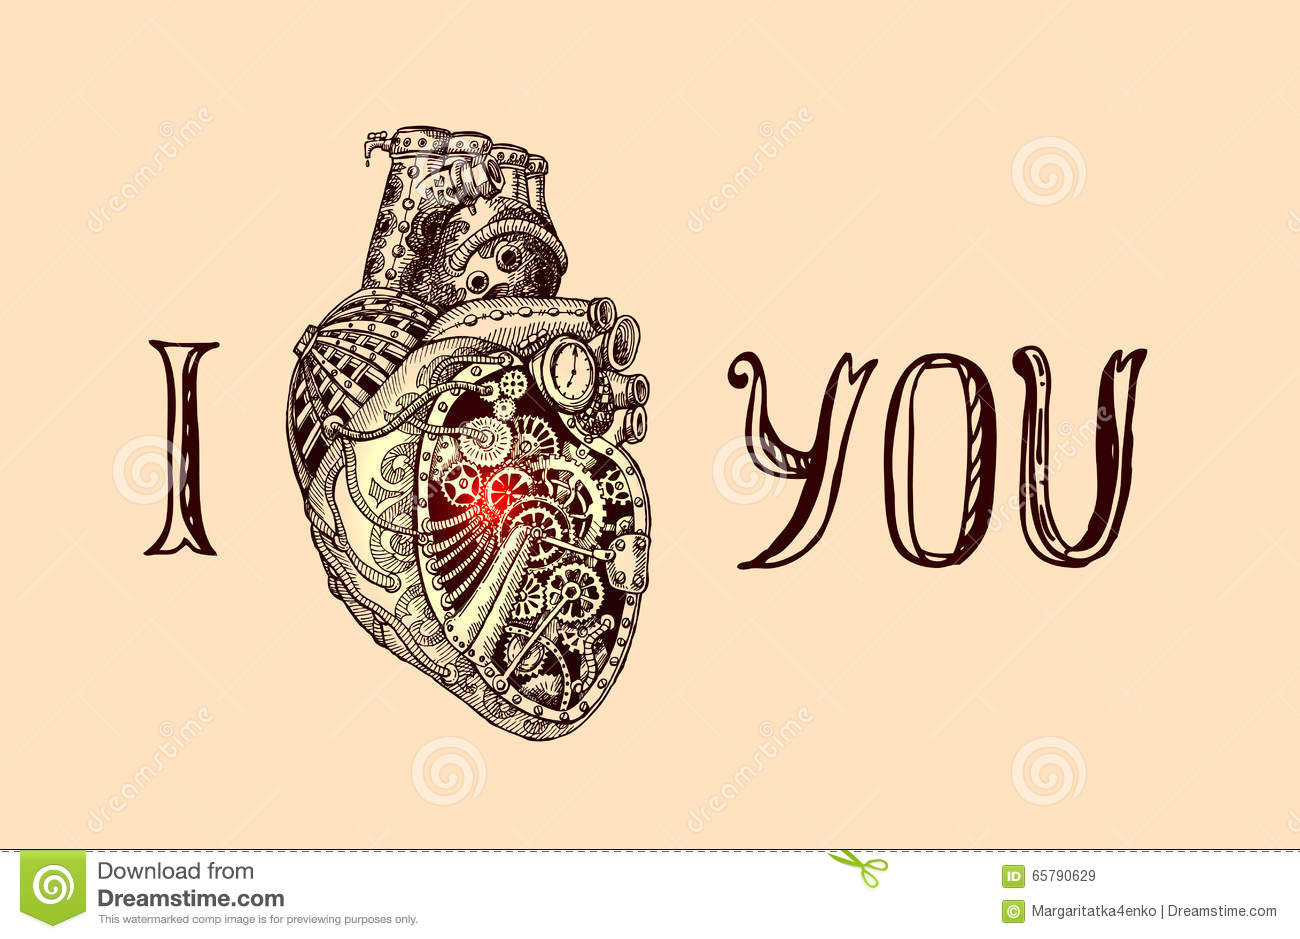 Illustration Of Mechanical Heart Stock Vector - Illustration of ...